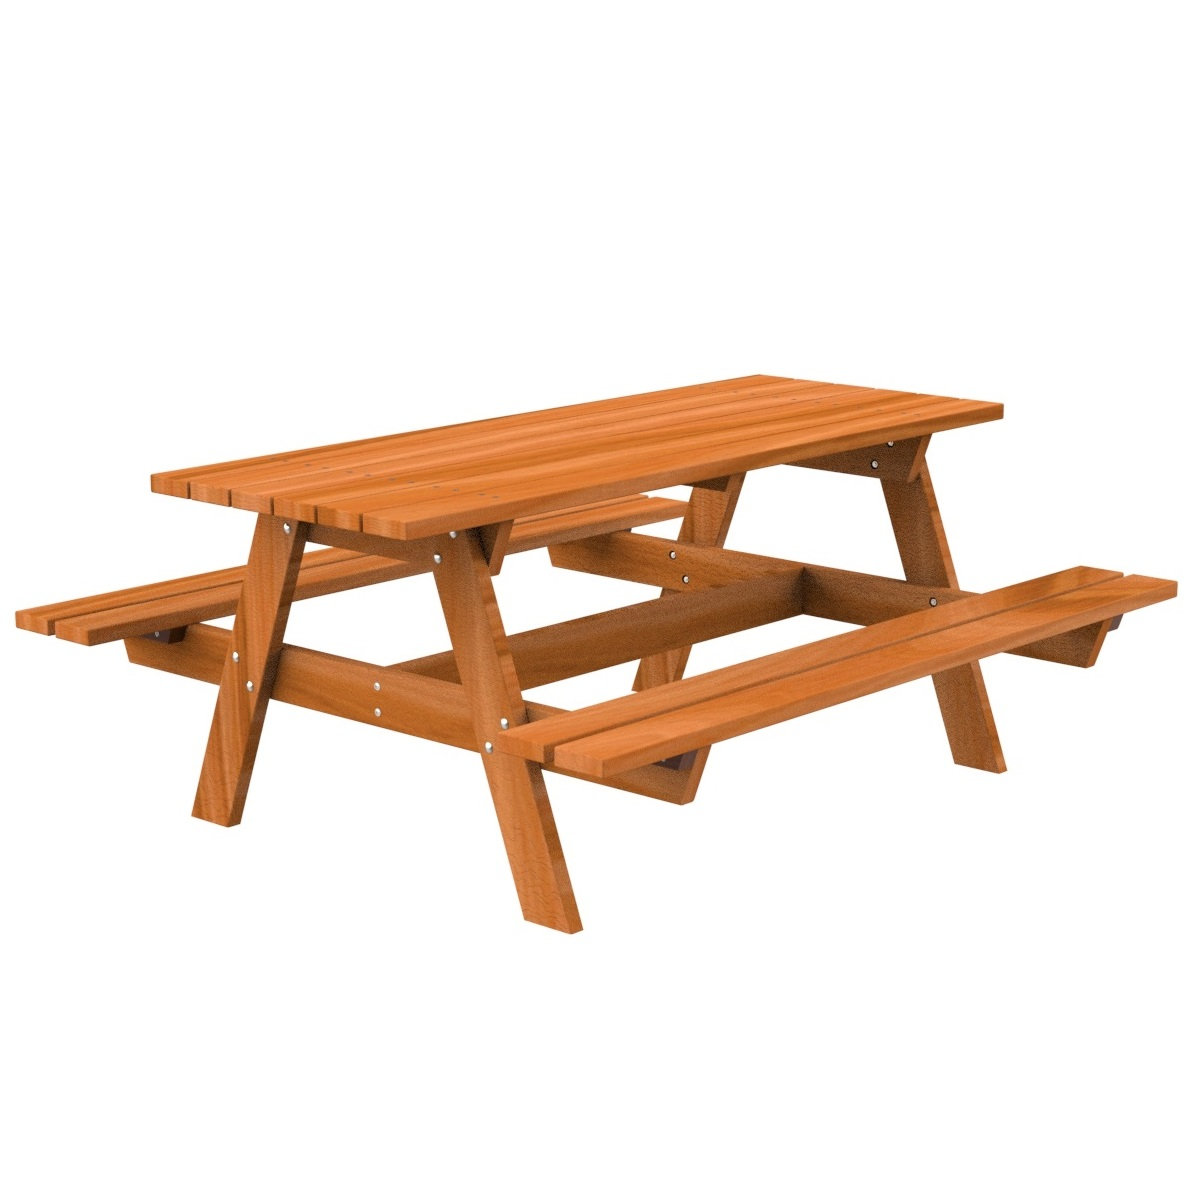 Tropical wood Table Picnic urban furniture parks and gardens